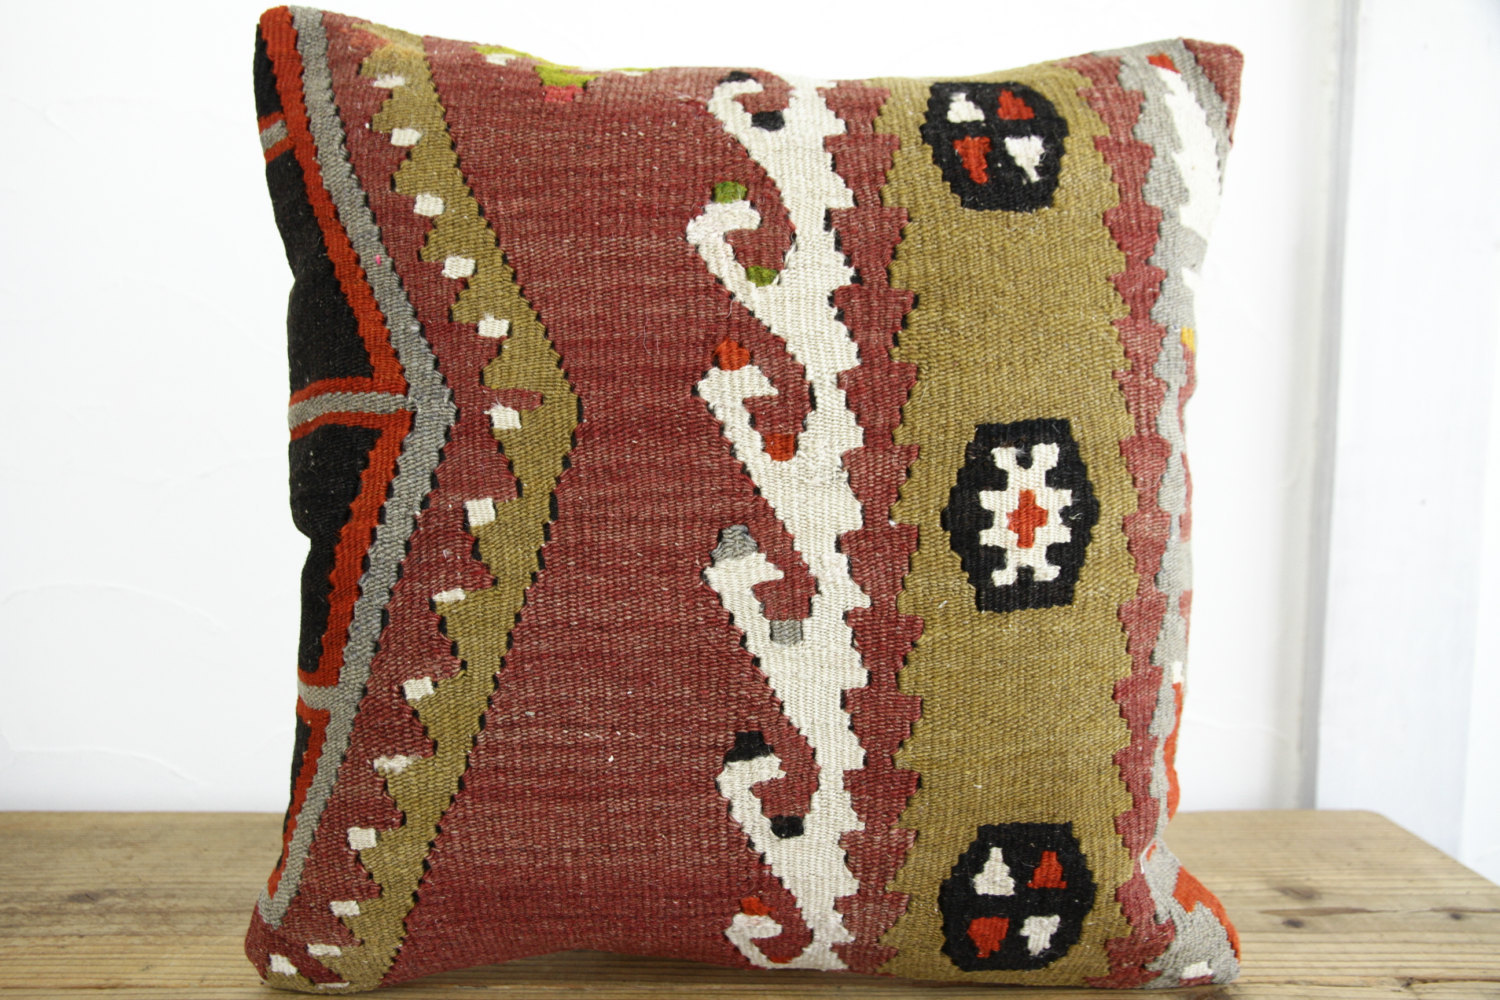 Kilim Pillows |18x18| Decorative Pillows | 310 | Accent Pillows, Kilim cushion